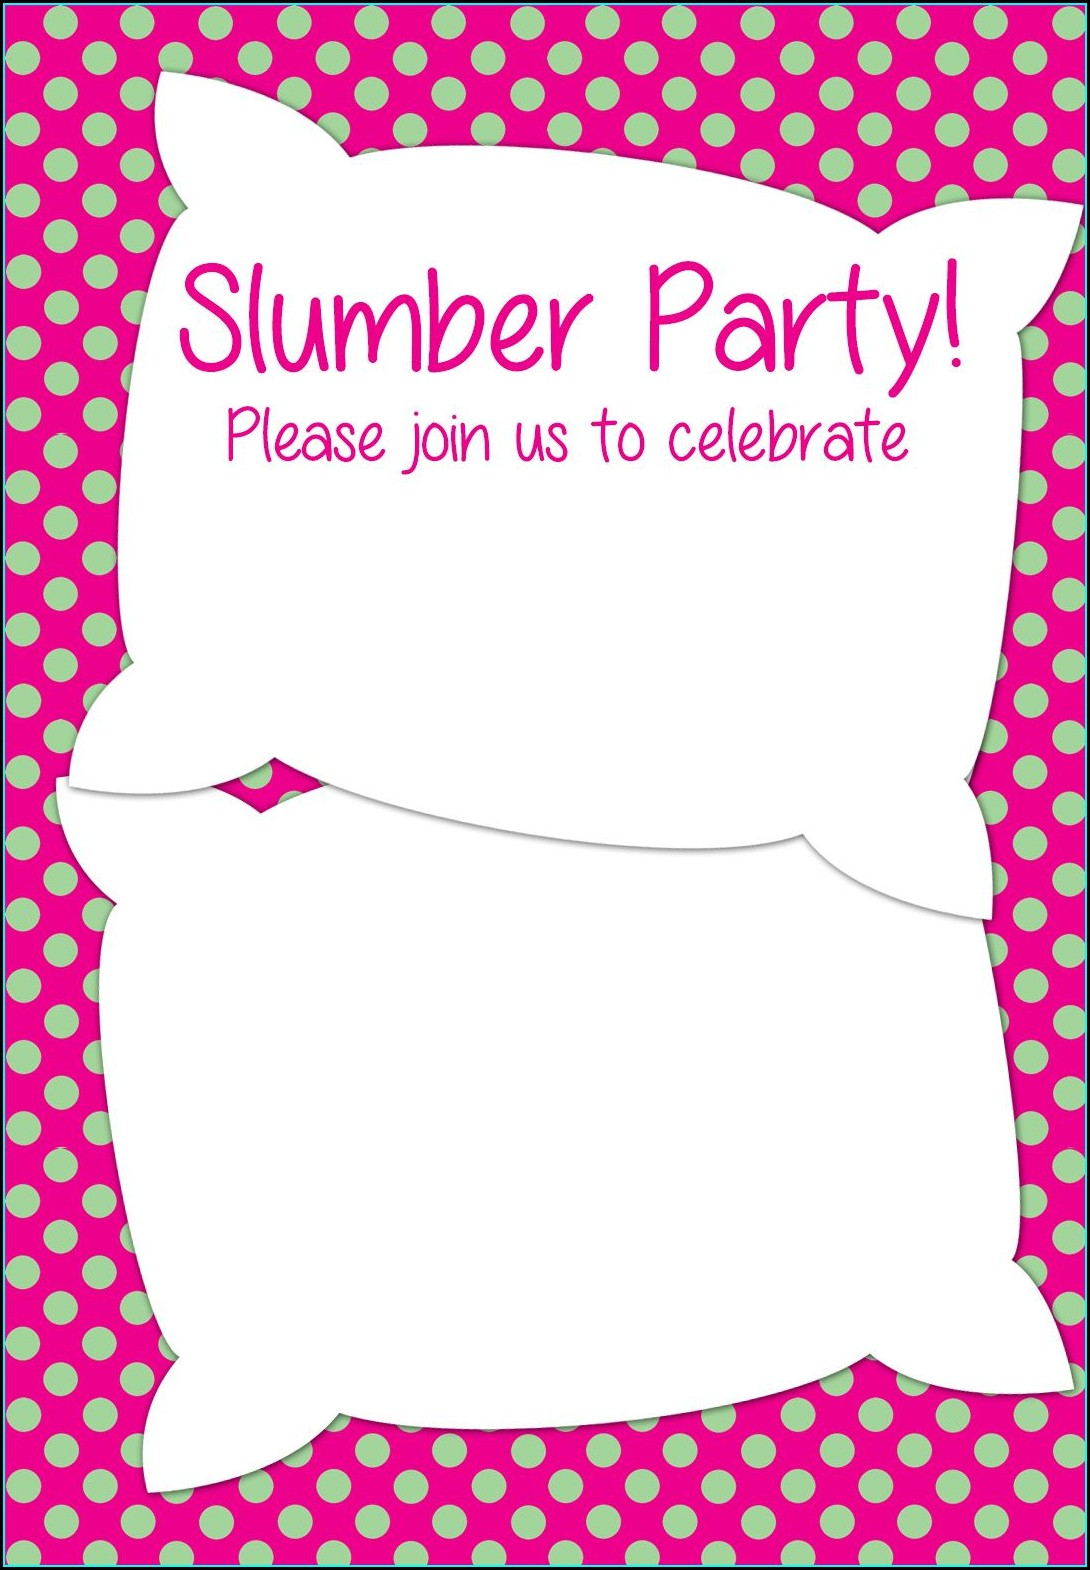 Sleepover Party Invitations Free Printable